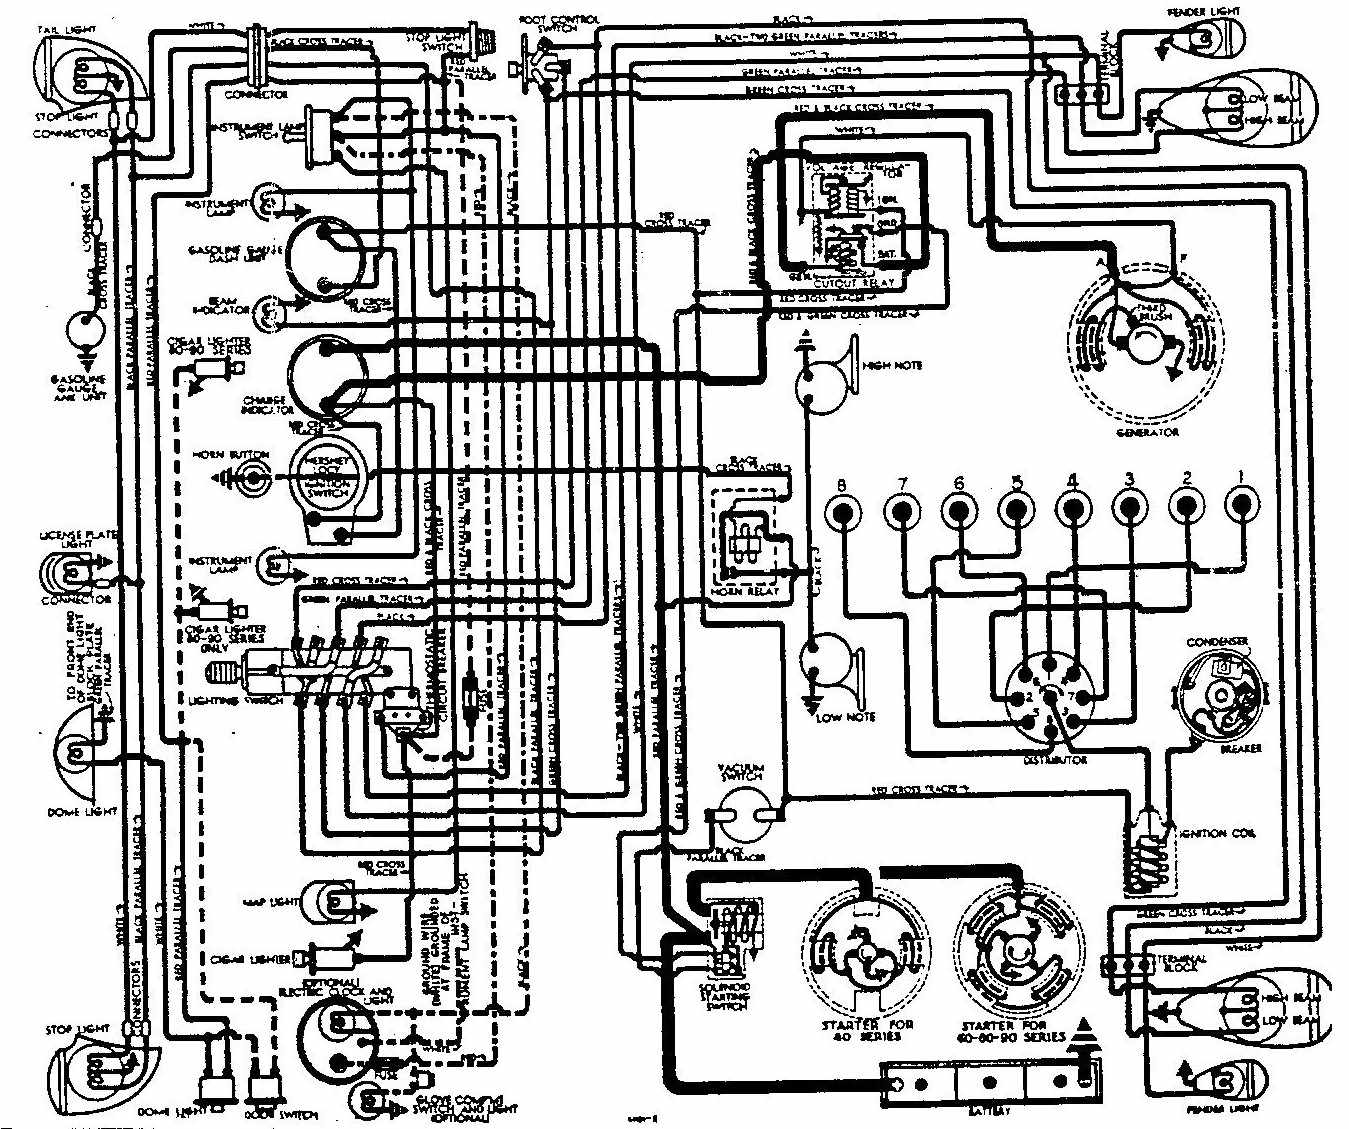 small resolution of 1956 ford wiring diagram free wiring library rh 79 codingcommunity de 56 ford fairlane wiring diagram ford turn signal wiring diagram